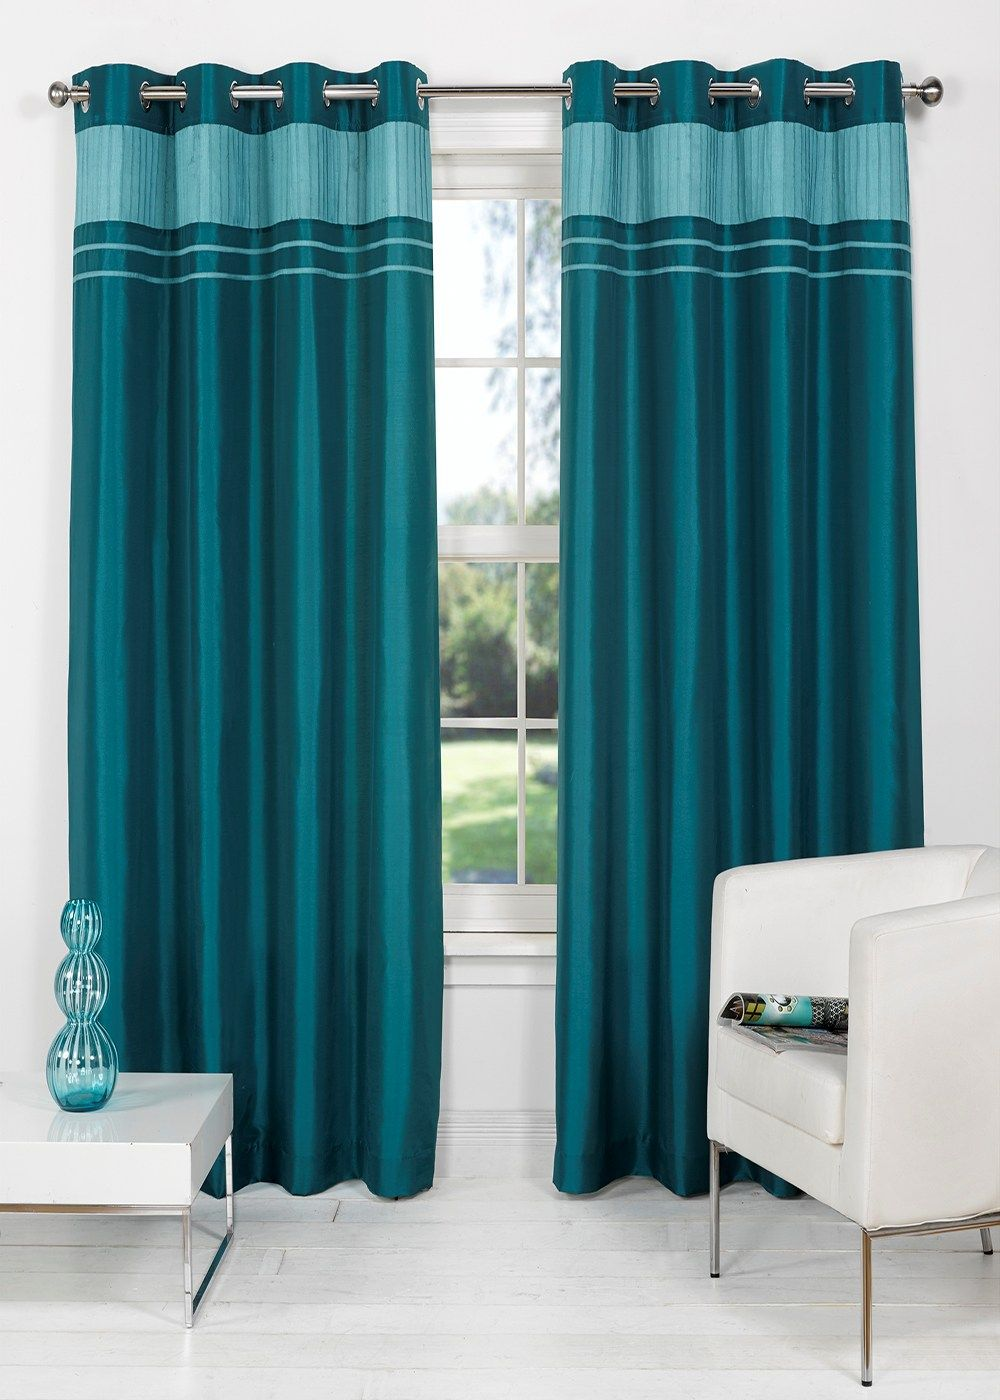 Silk Curtains For Living Room Charlotte Faux Silk Fully Lined Eyelet Curtains Matalan Living